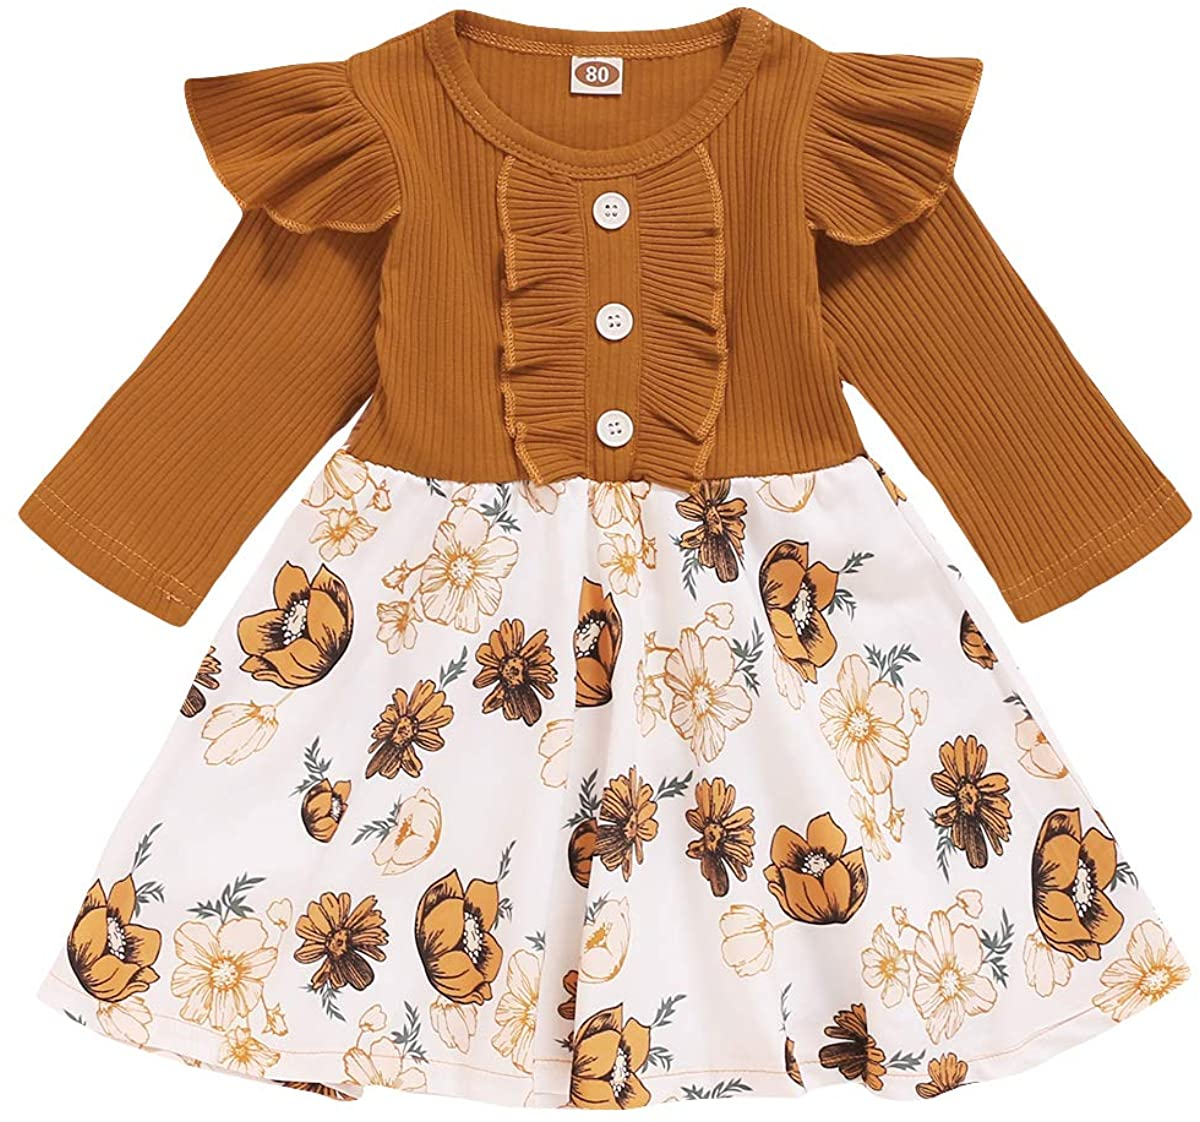 Infant Toddler Baby Girl Ribbed Ruffle Dress Cute Solid Long Sleeve Dresses Floral Fall Winter Warm Outfits Clothes